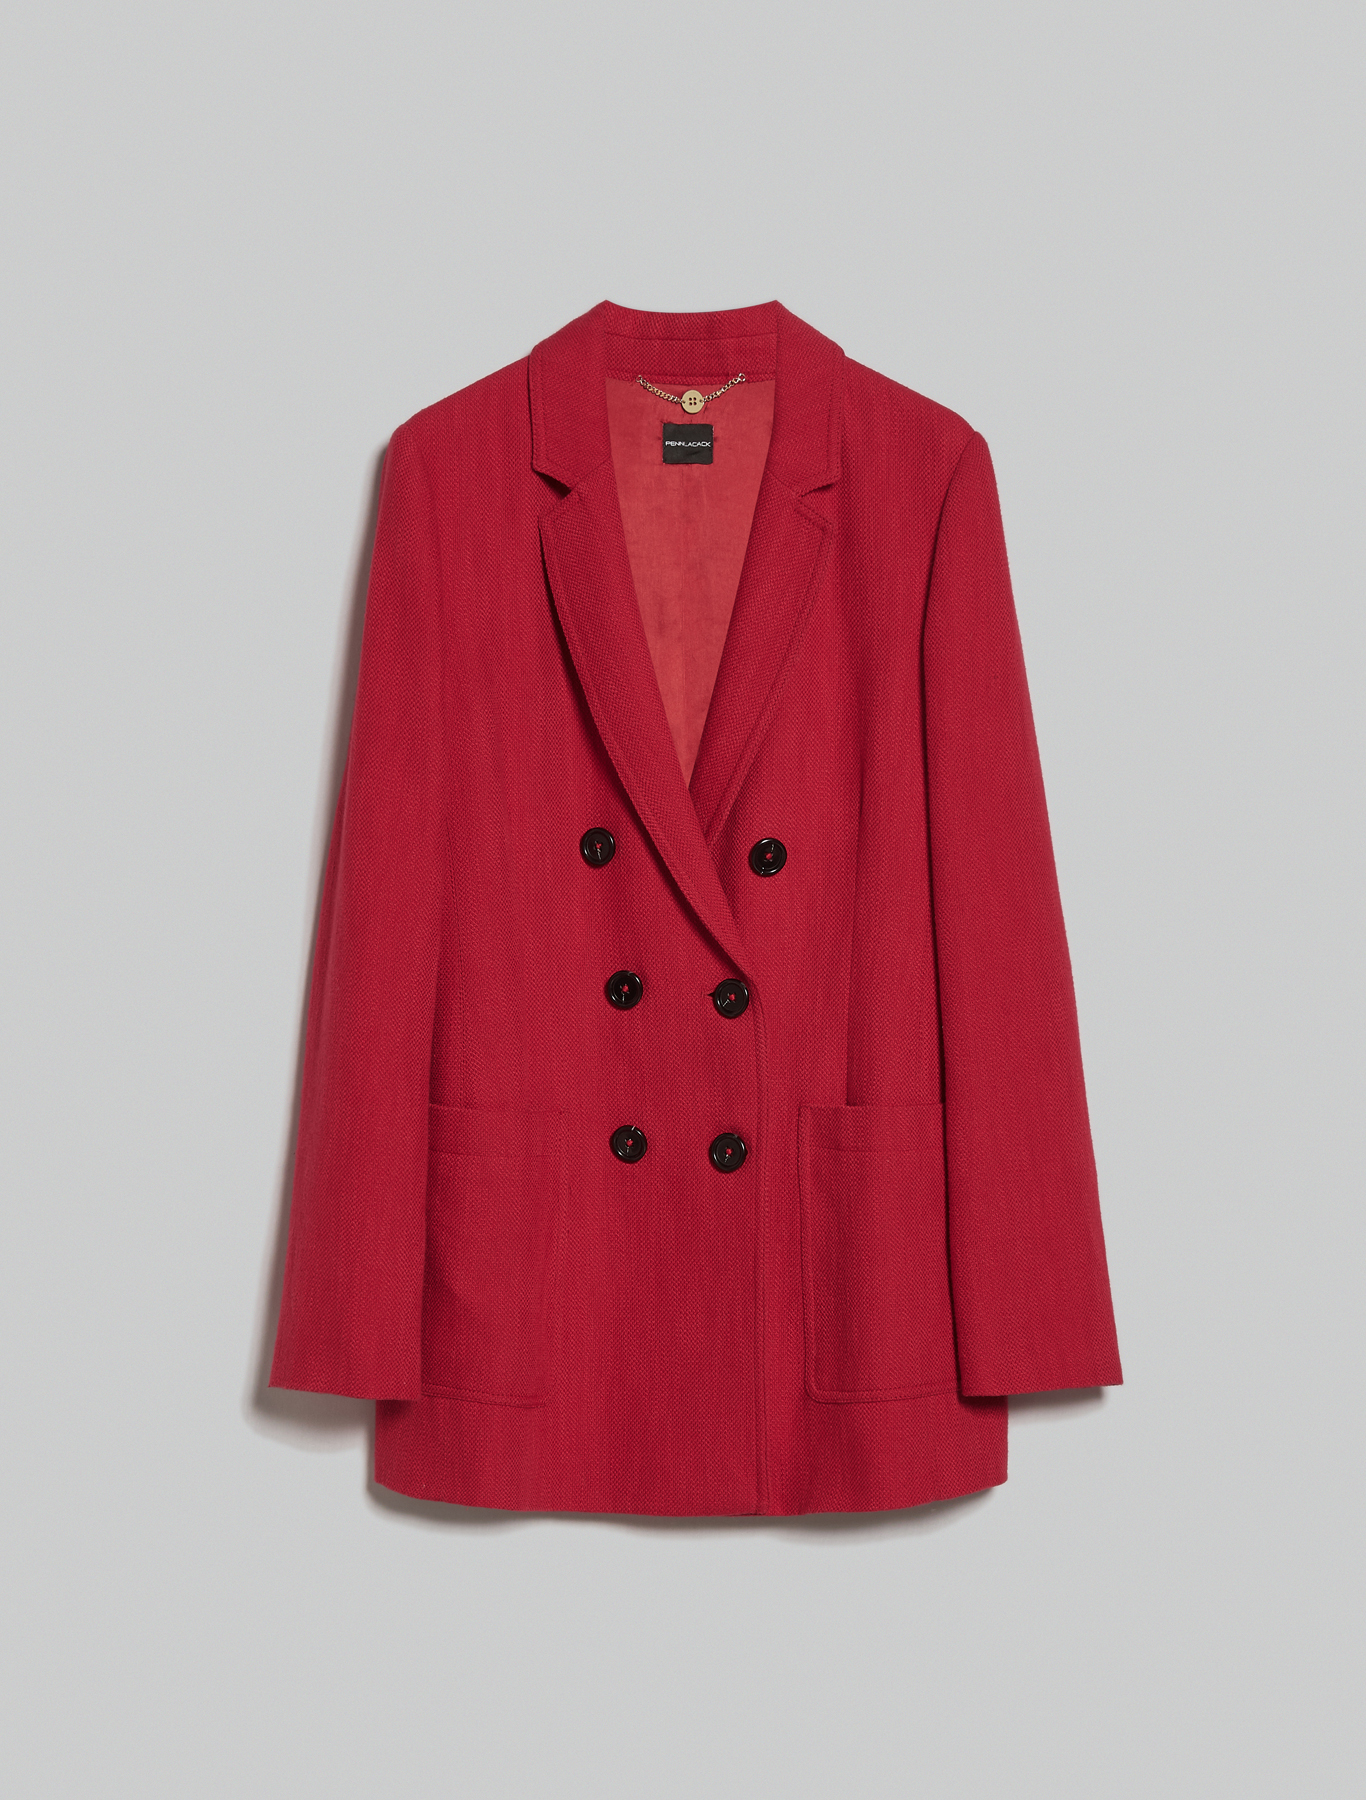 Basketweave blazer - red - pennyblack